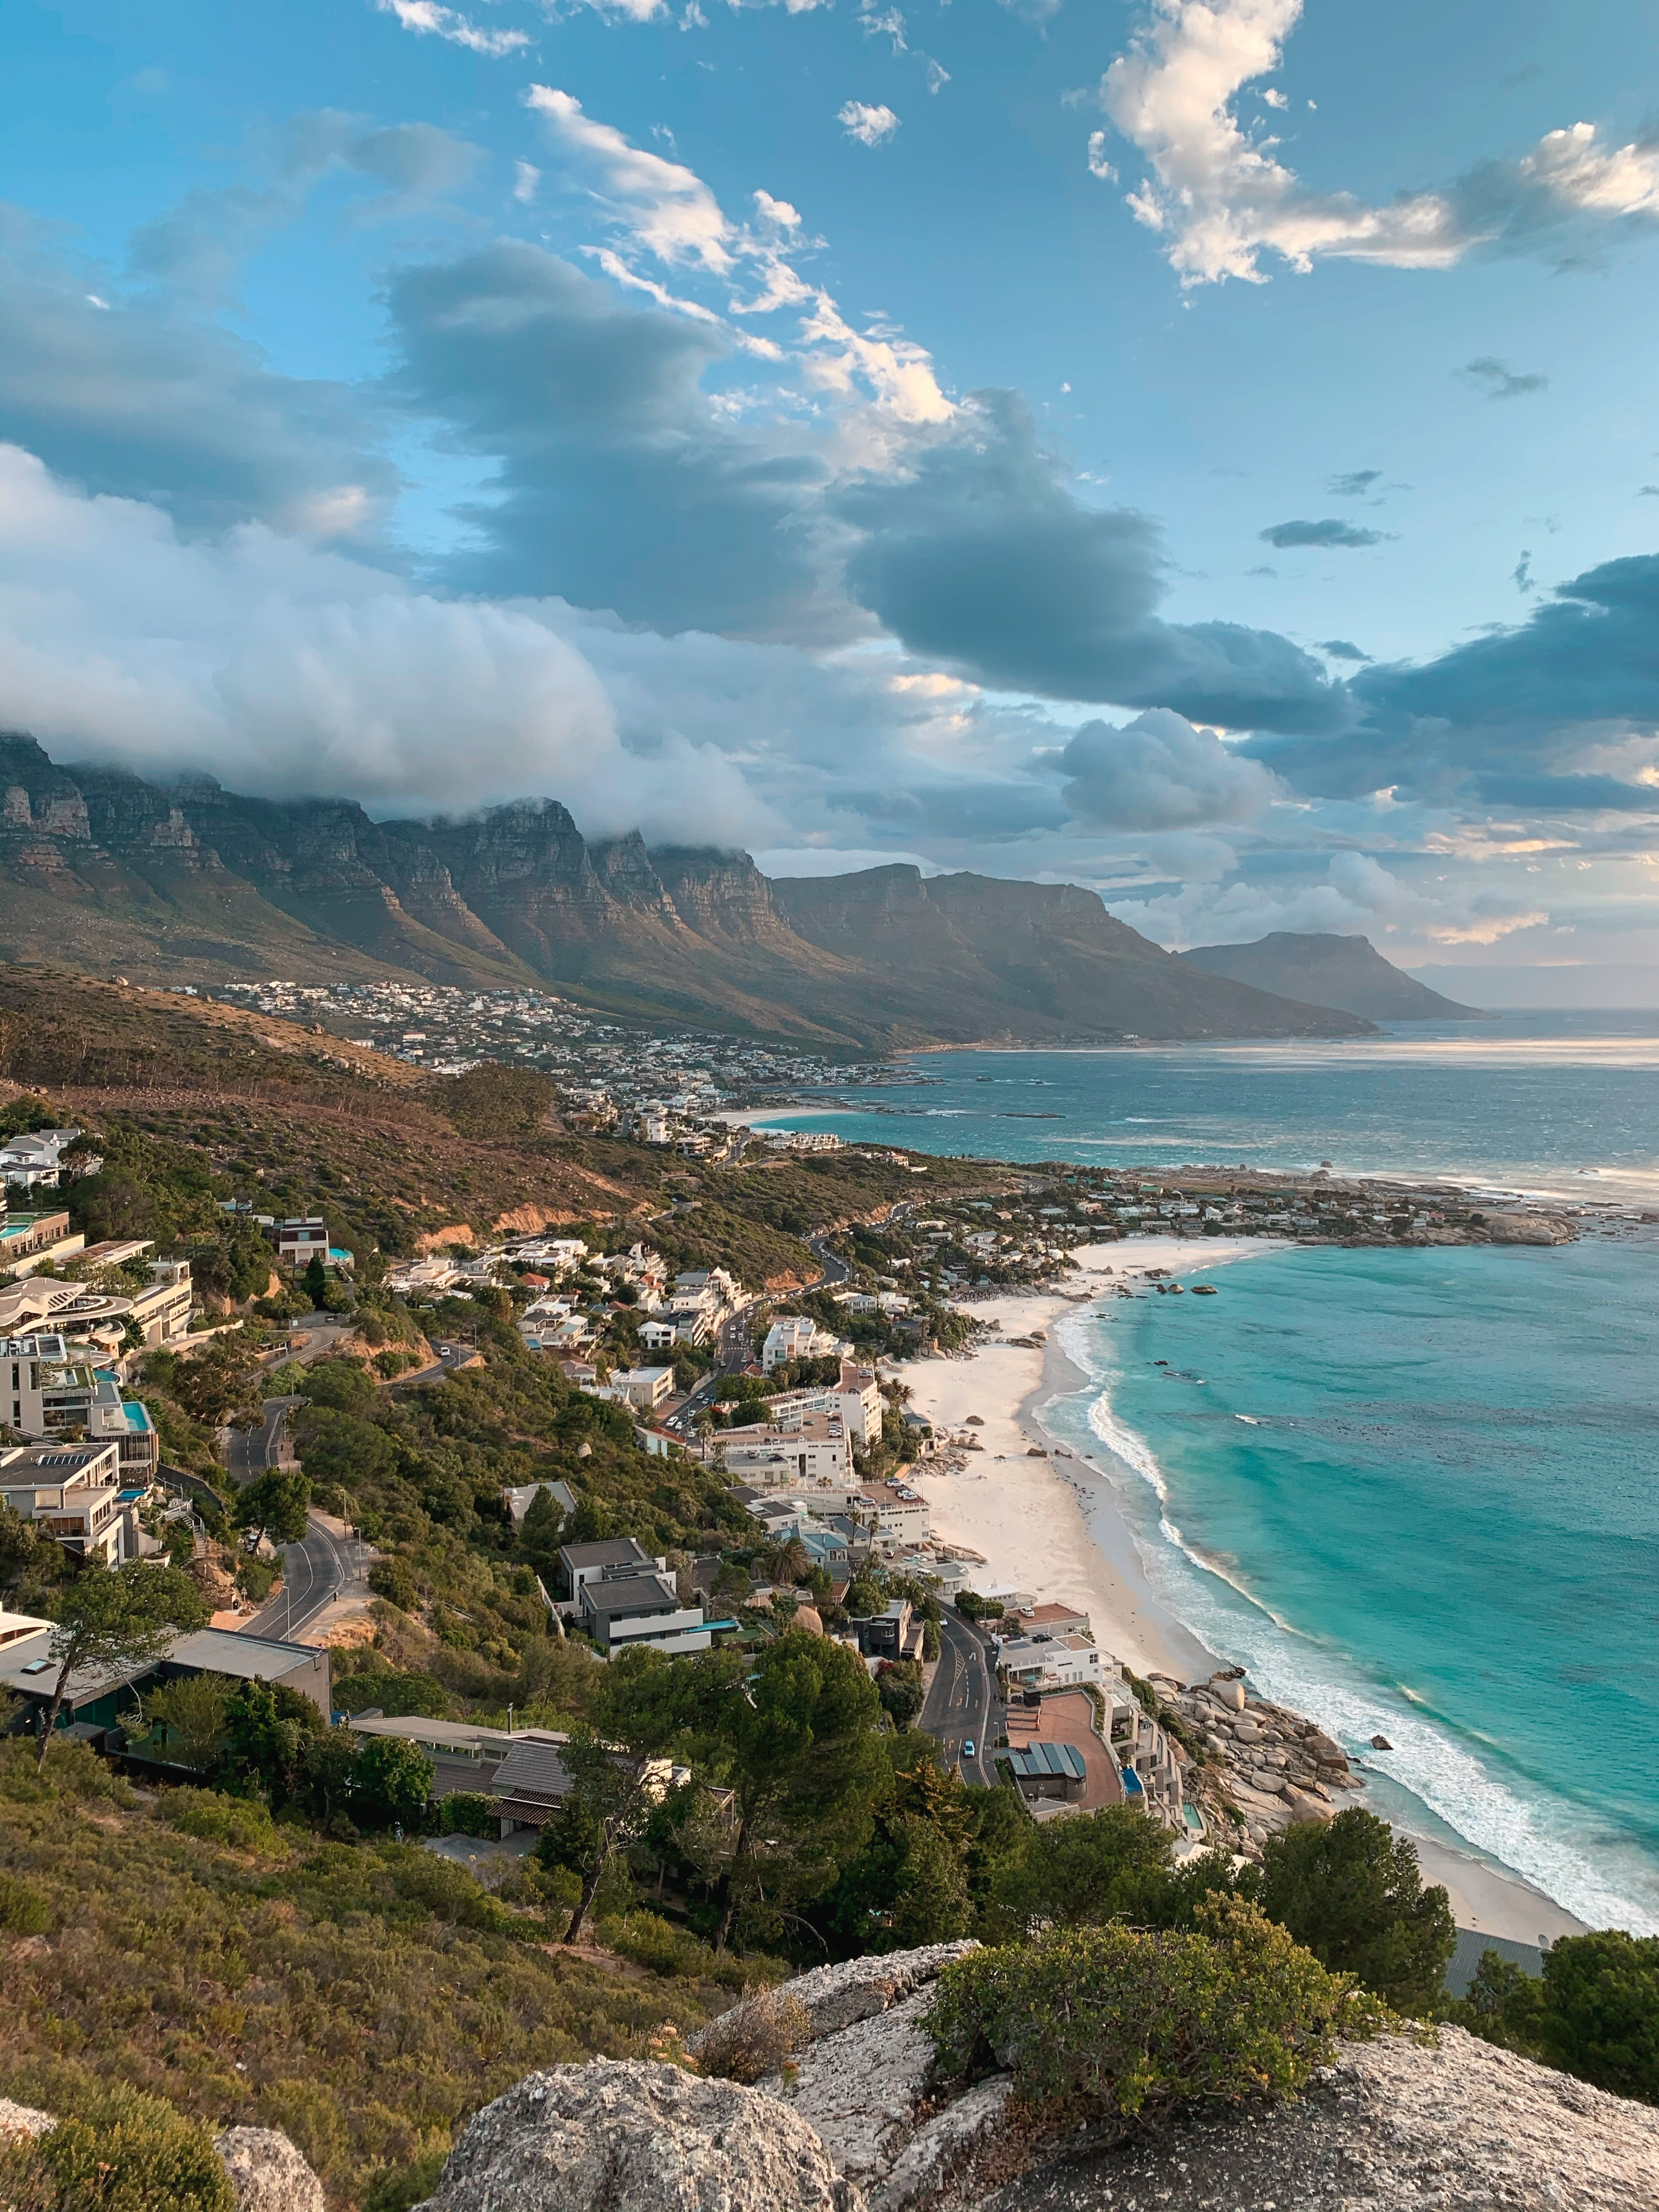 CAPE TOWN TRAVEL GUIDE: 11 Things To Do In Cape Town